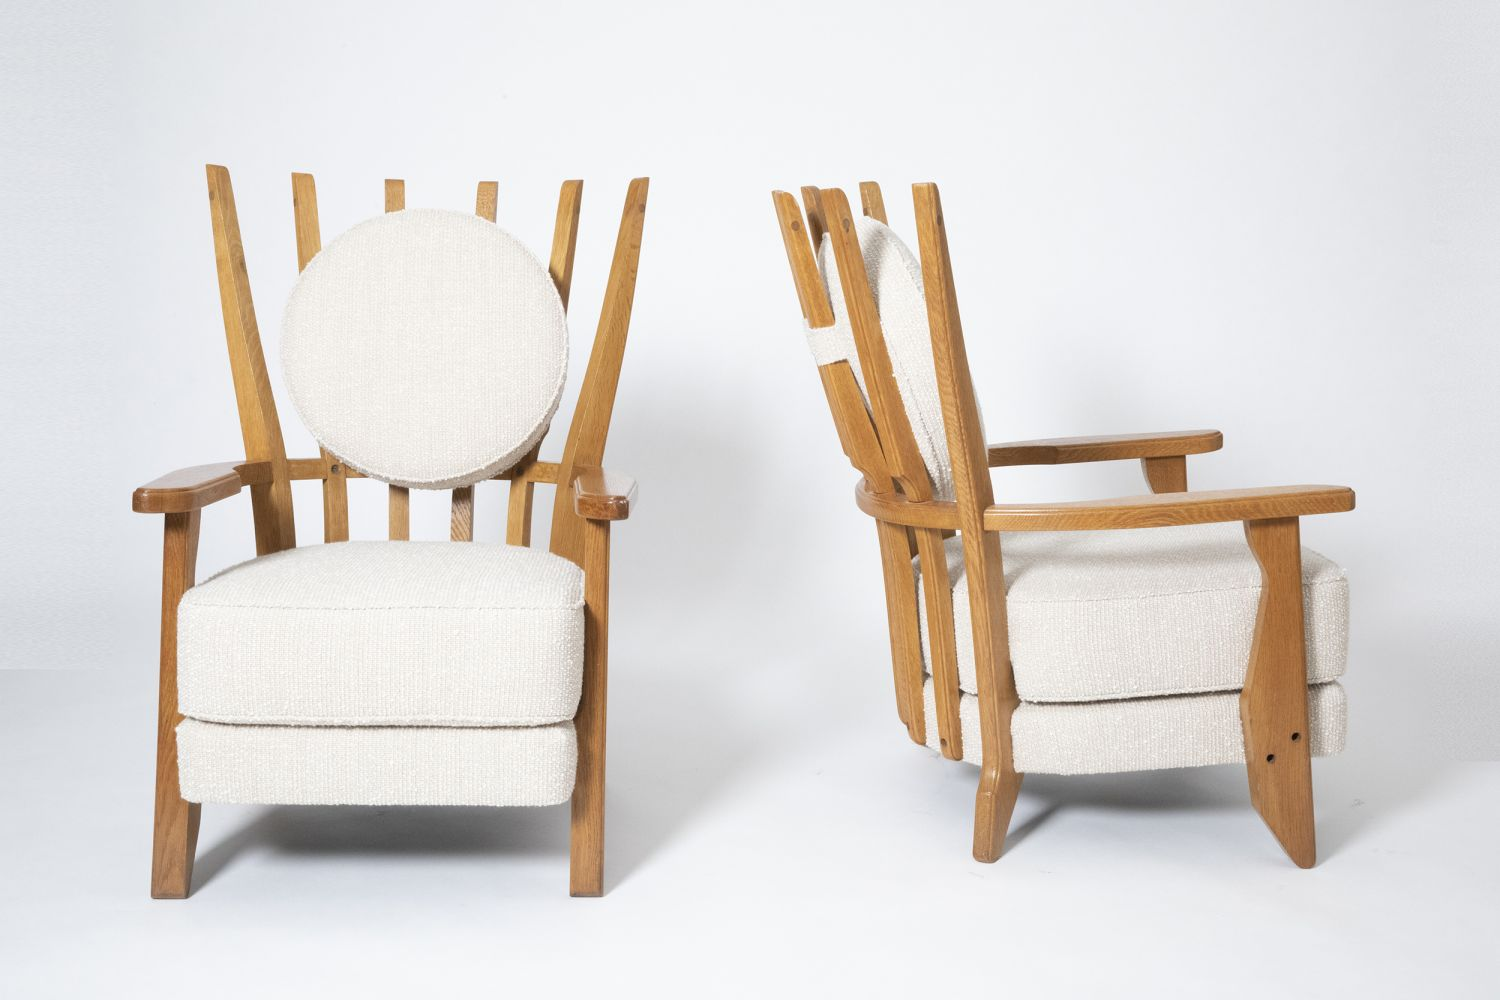 """Guillerme et Chambron's Pair of """"Tapissier"""" armchairs, full front and side views of both armchairs"""